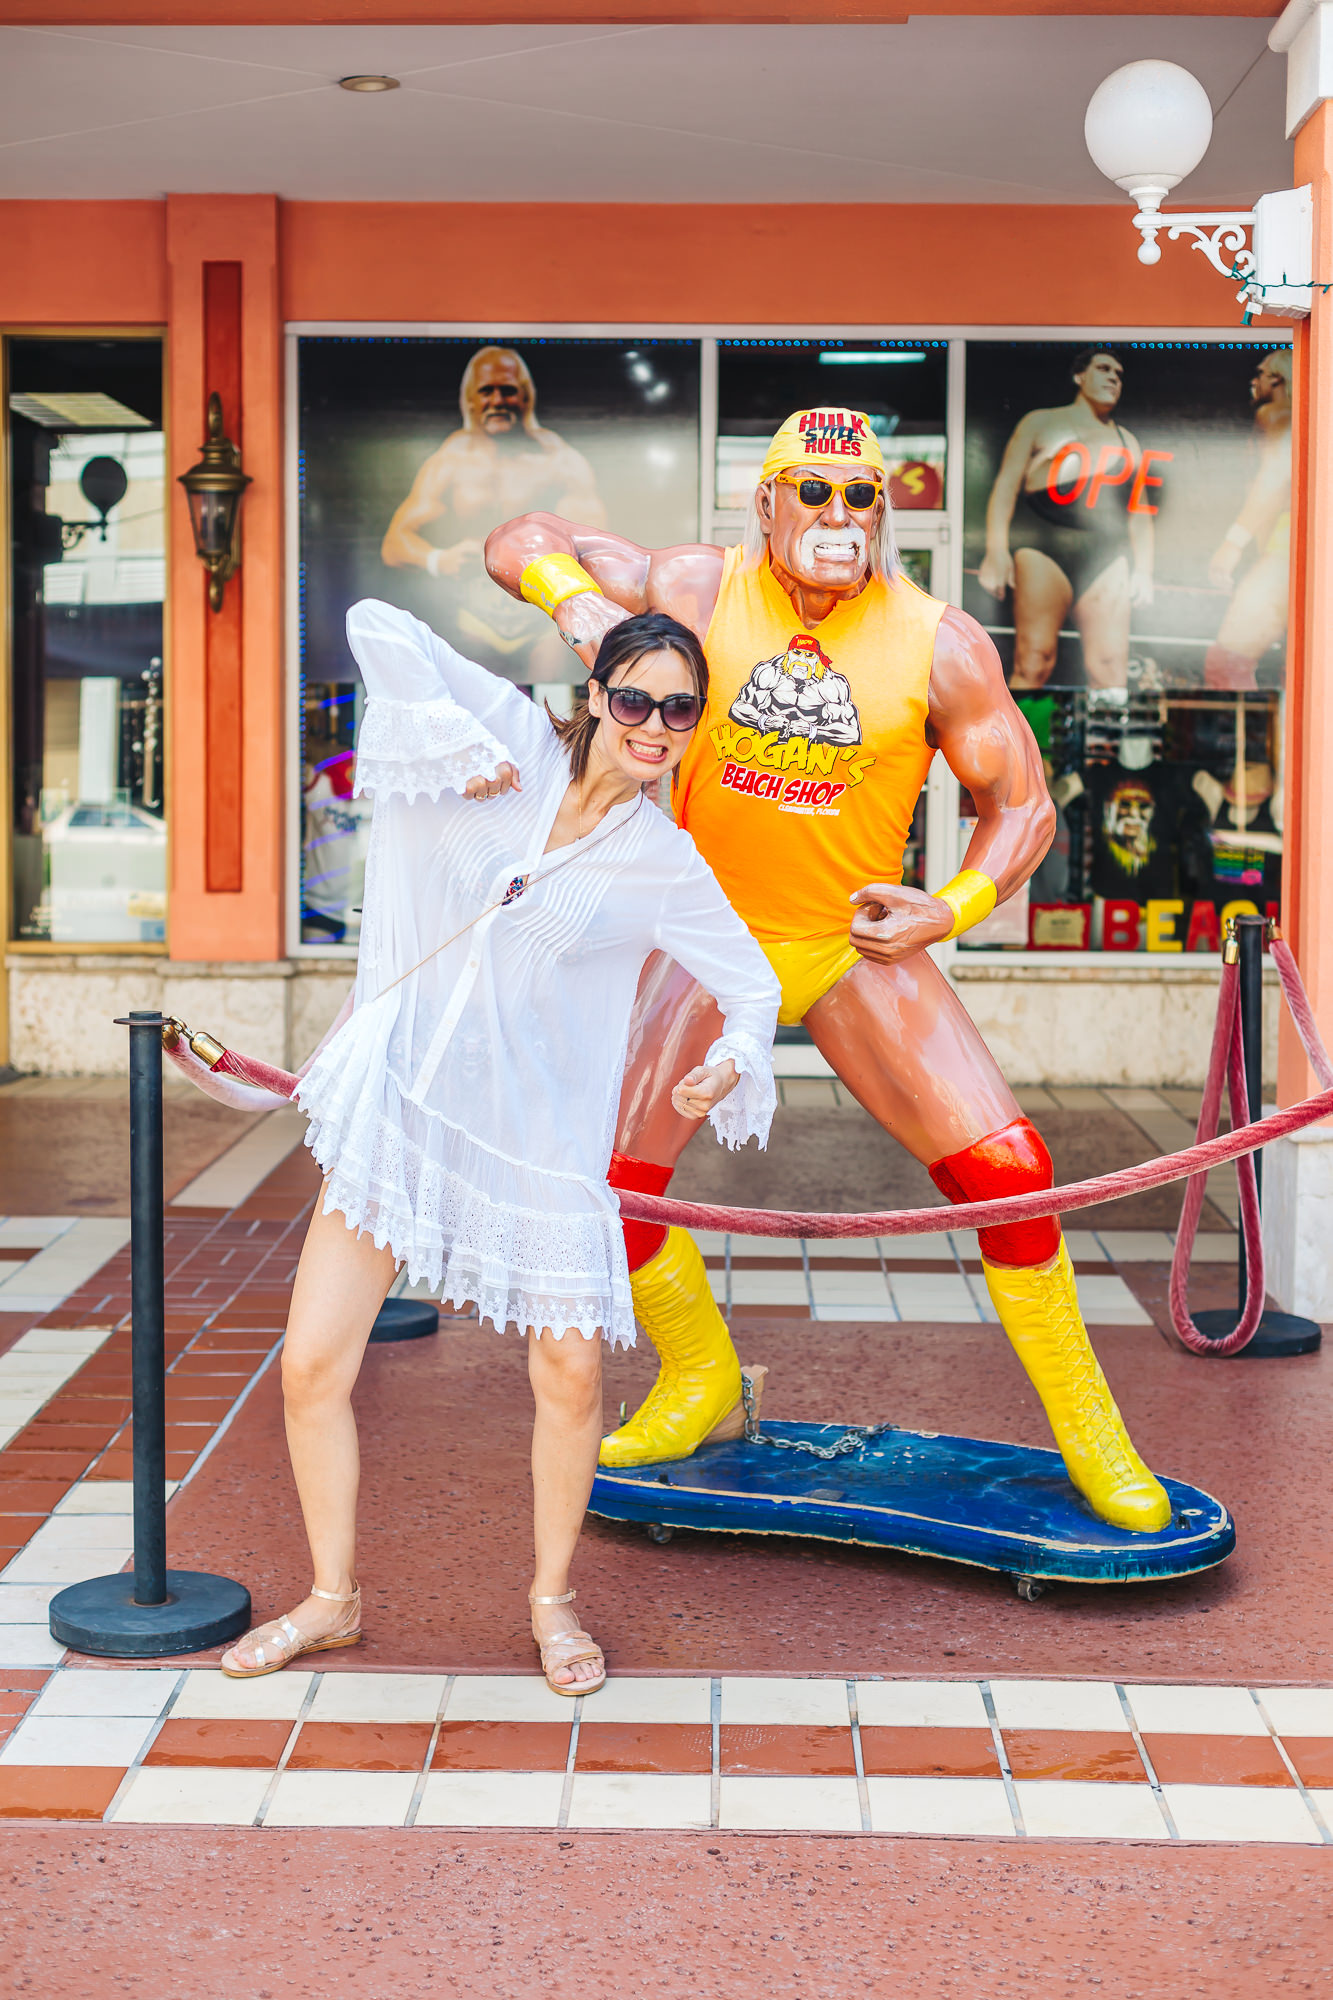 Great photo ops at Hogan's Beach Shop in Clearwater